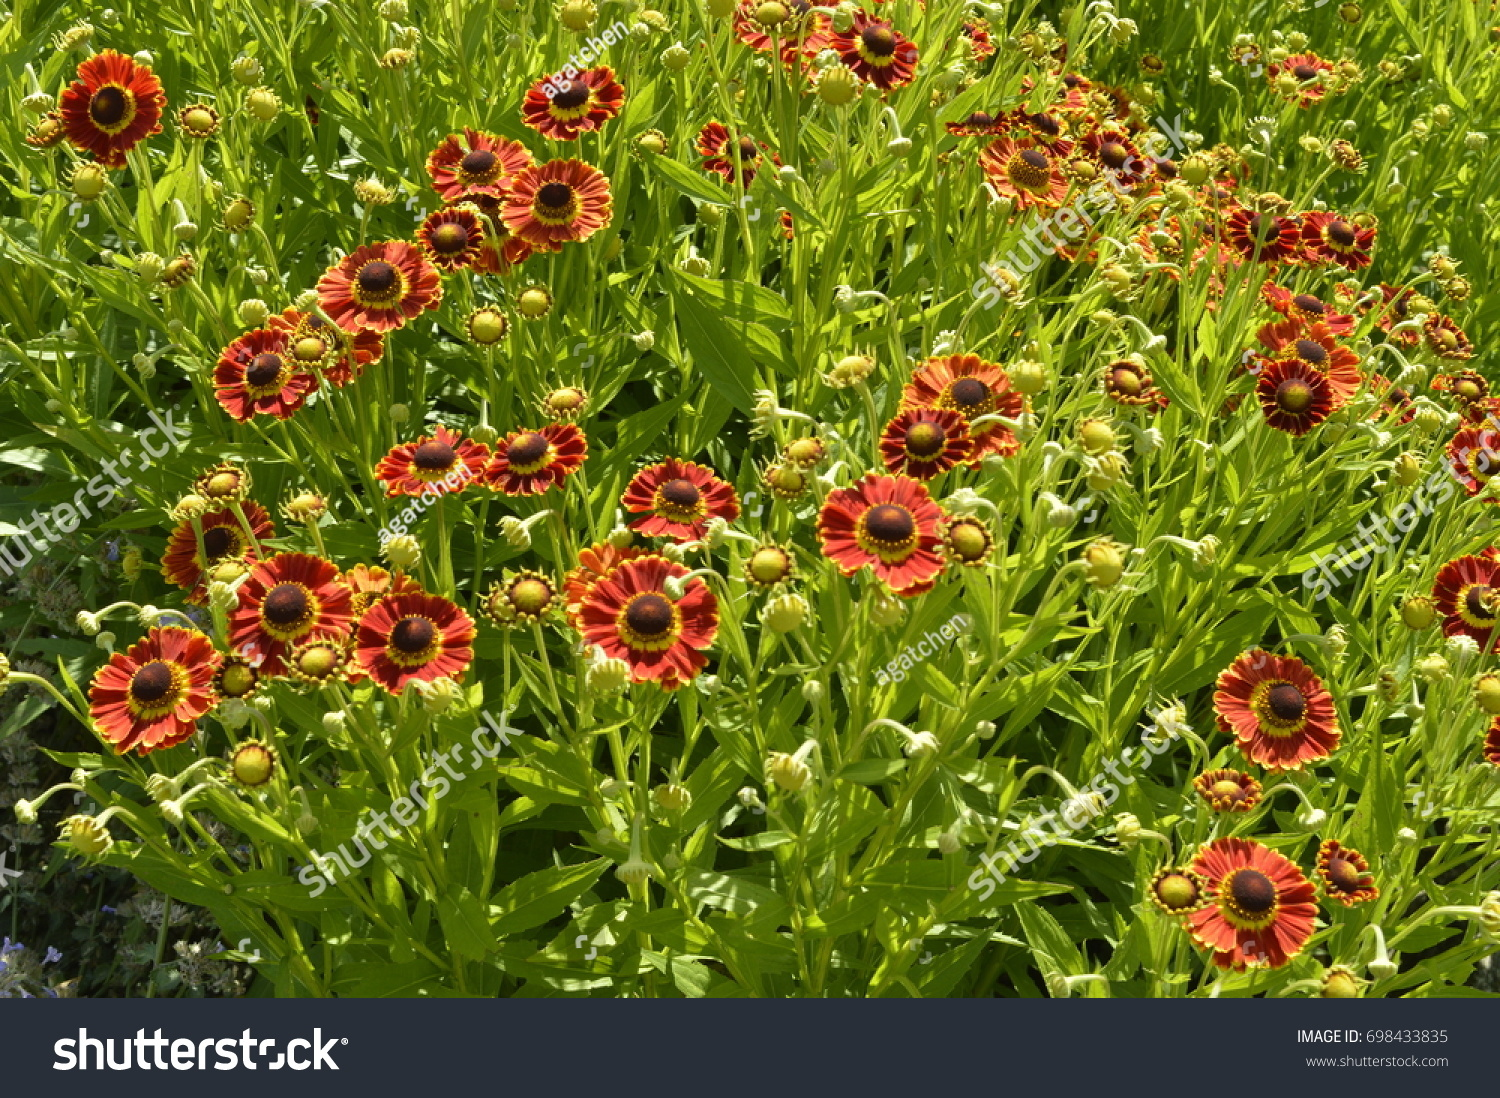 Beautiful Tall Flowers Like Orange And Red Daisies Ez Canvas